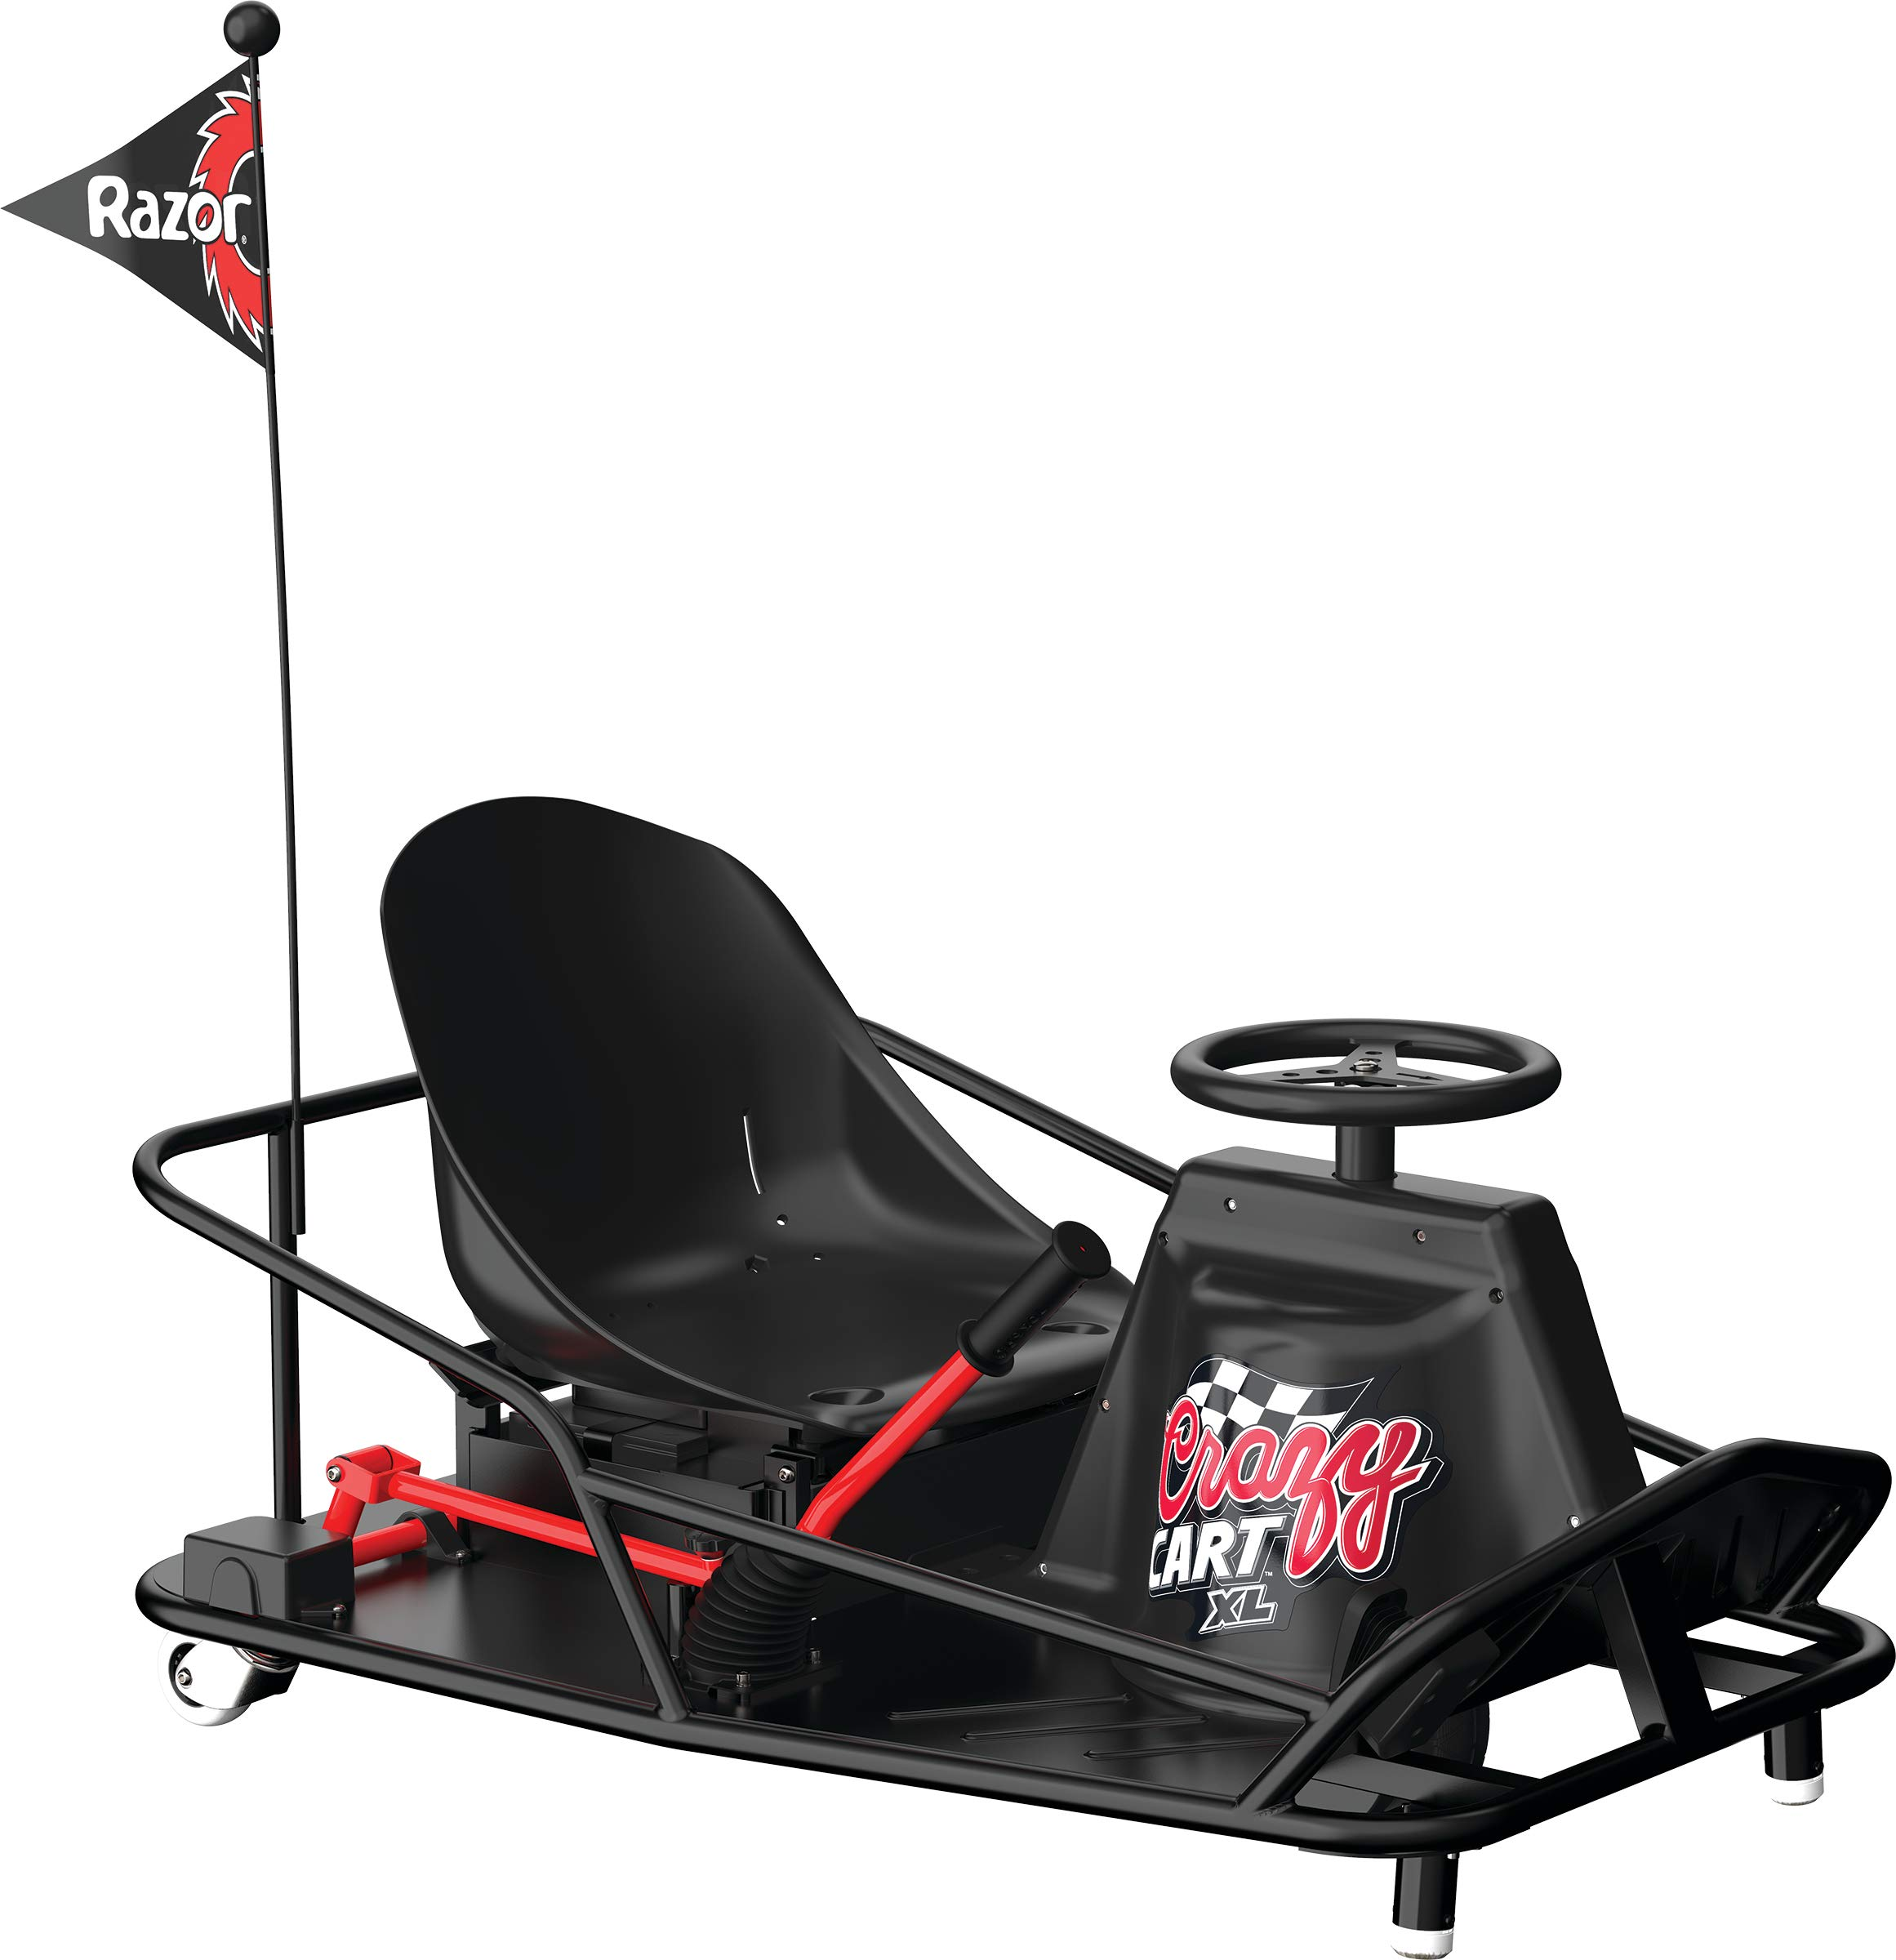 Razor Crazy Cart XL 36 Volt Electric Go-Kart